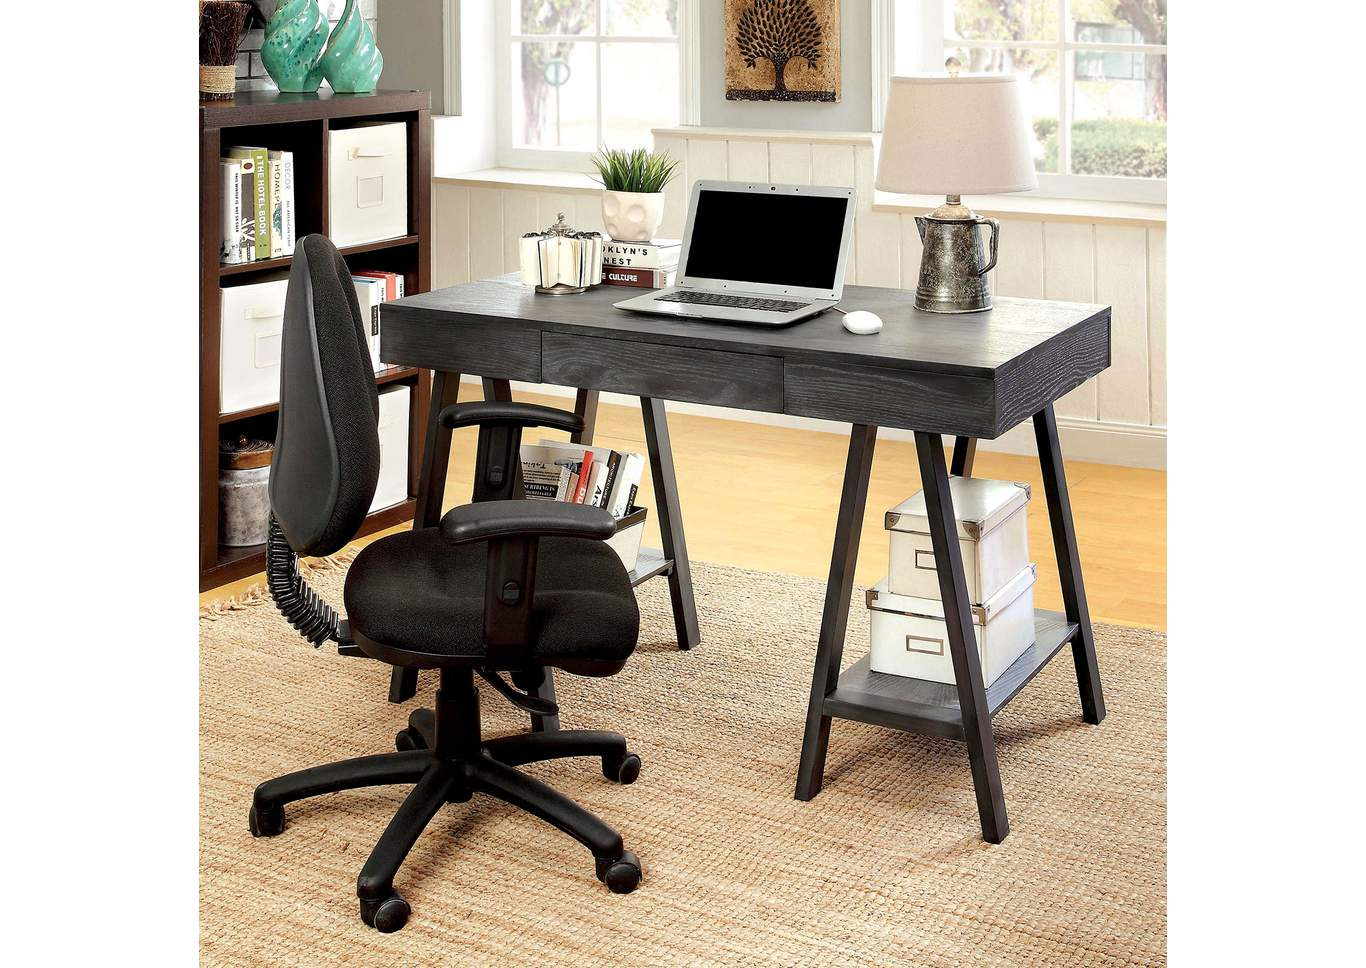 Surrey Gray Desk w/Drawer,Furniture of America